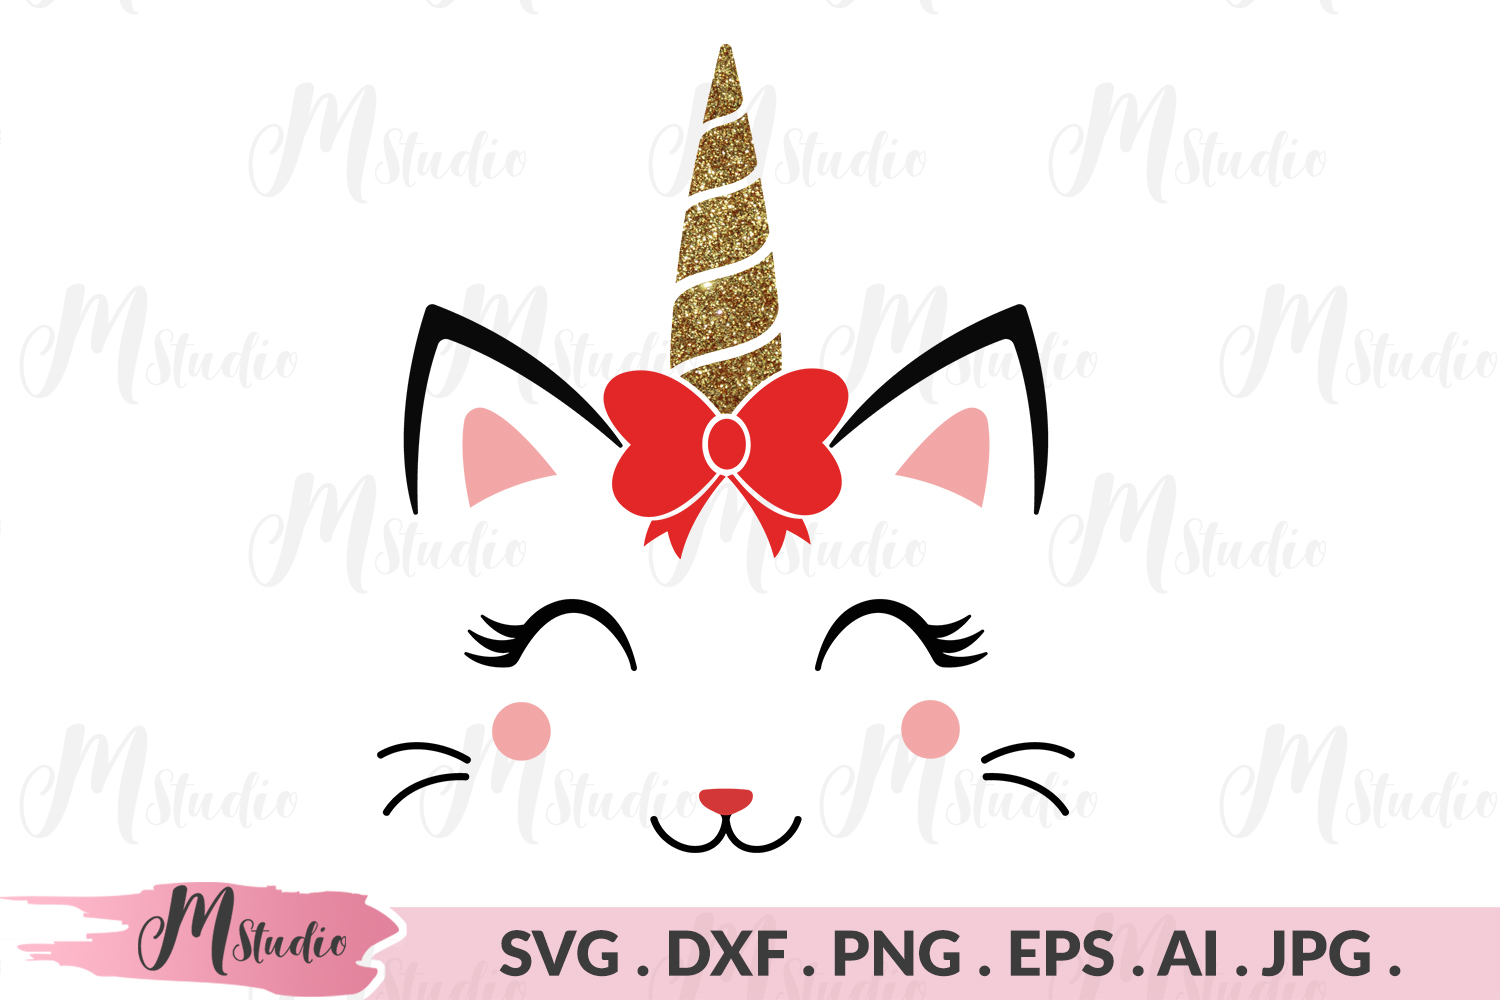 Caticorn with bow svg example image 1